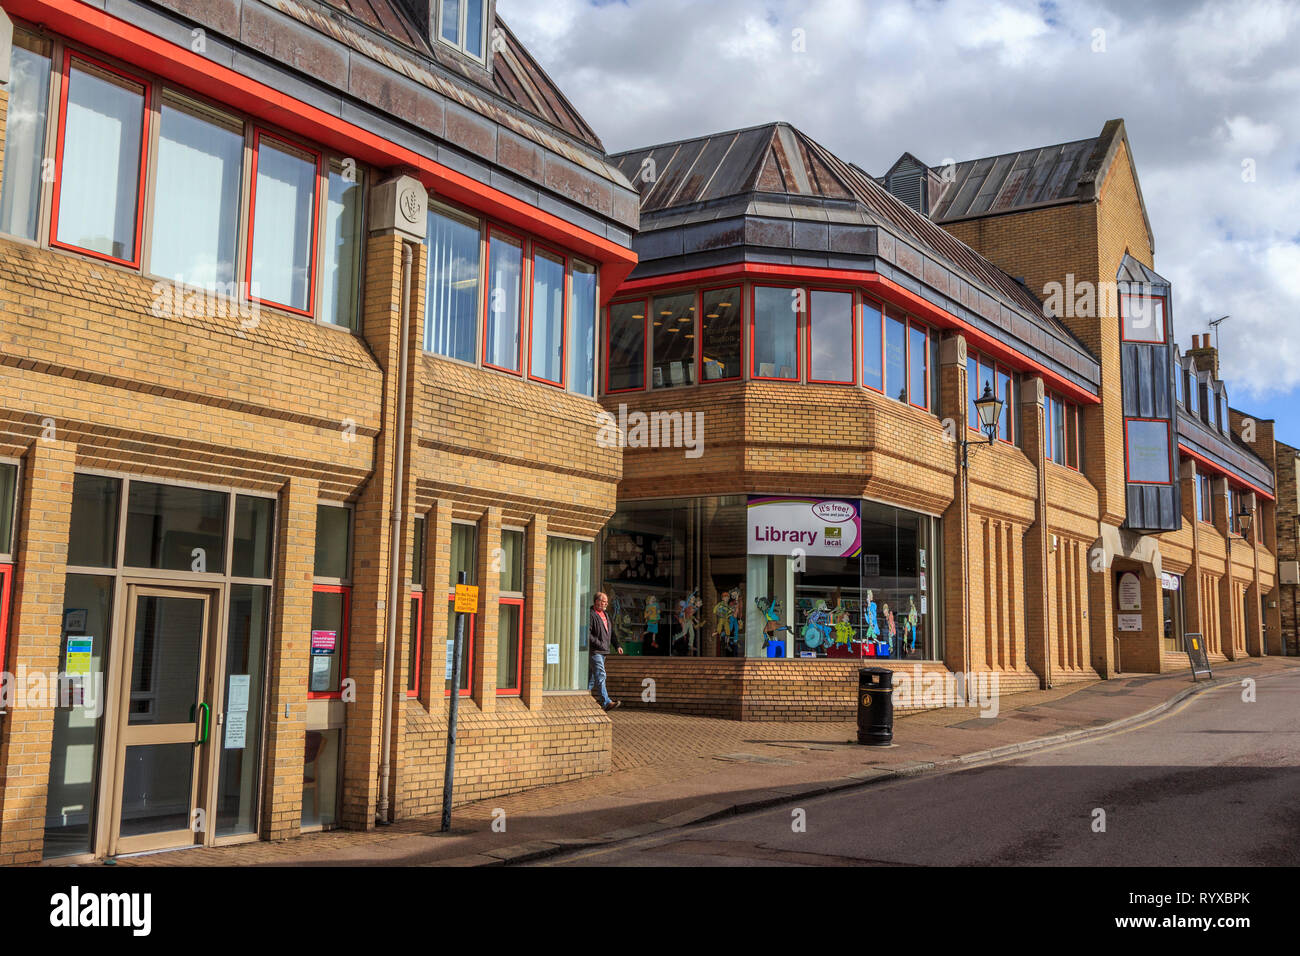 royston village the old library development , town centre, high street, hertfordshire, england, uk gb - Stock Image